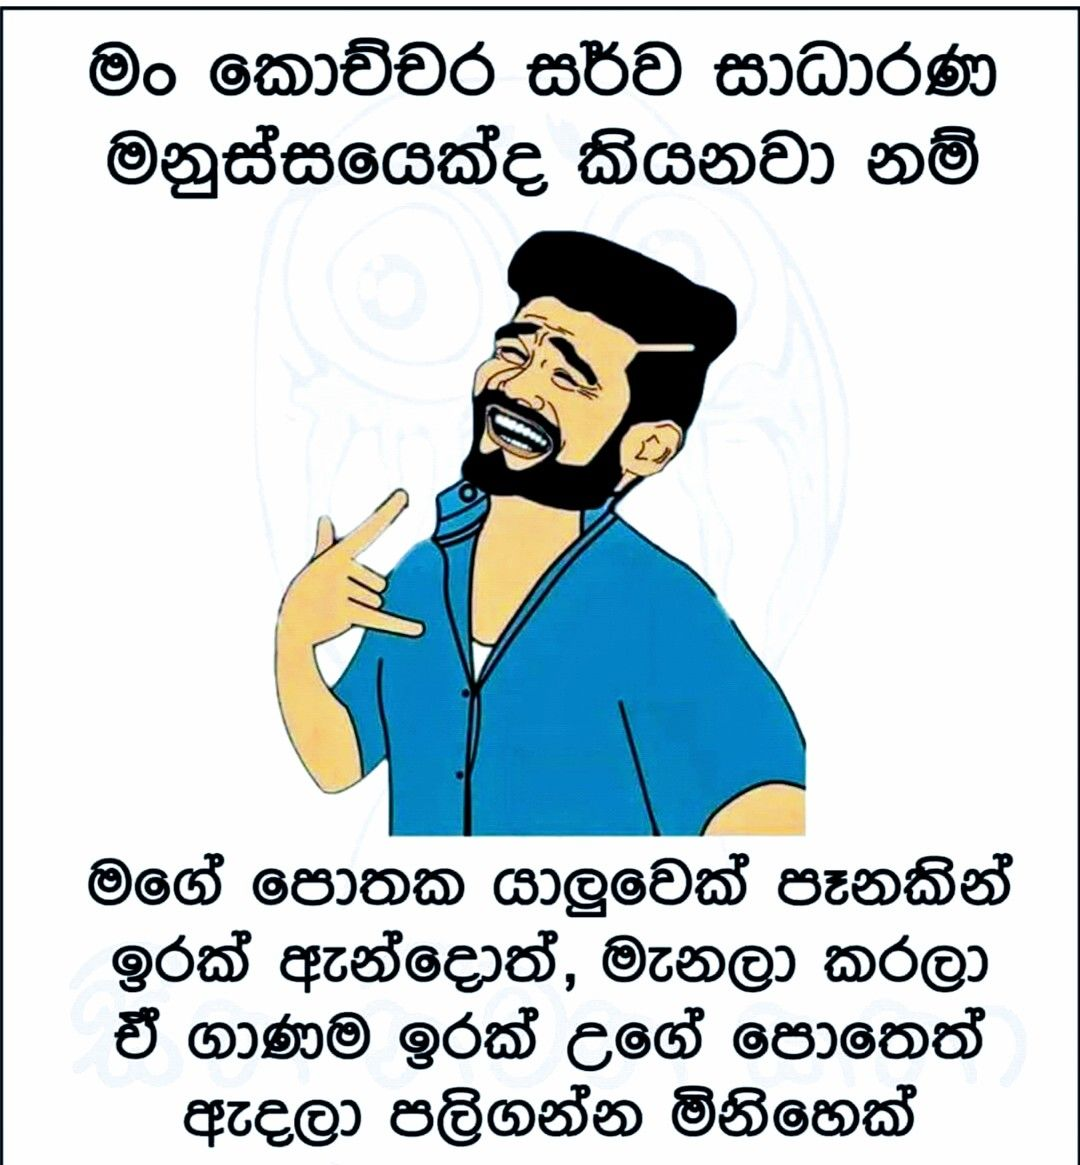 Pin By Pamod On Lankan Memes Funny Quotes Jokes Quotes Jokes Photos